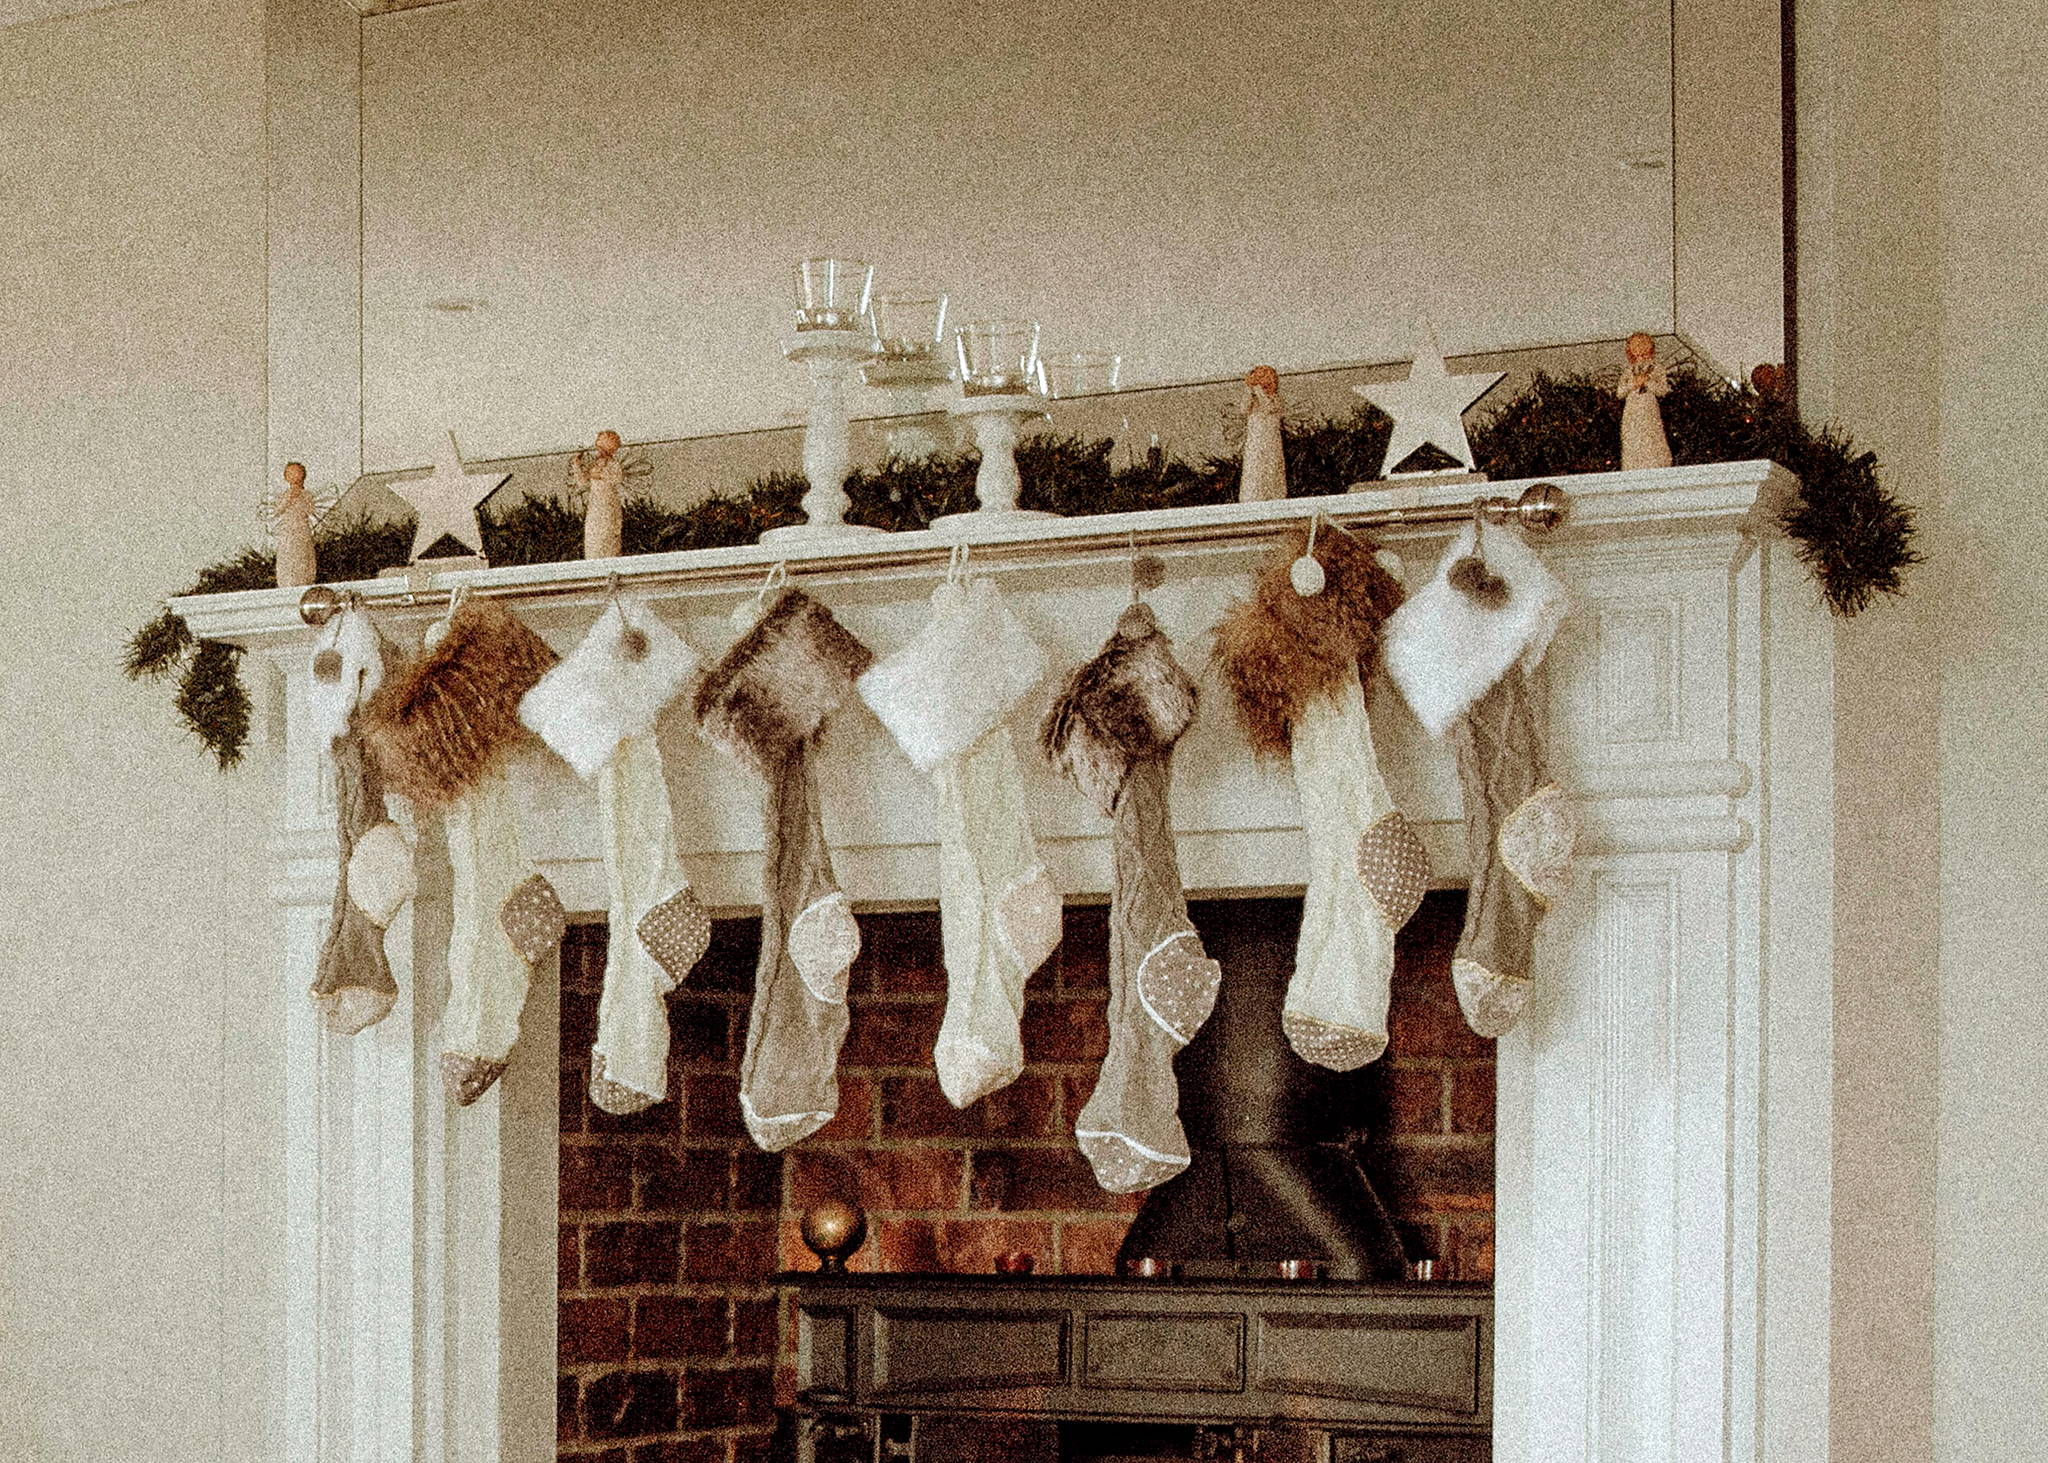 Display of stockings hanging in front of a fire place